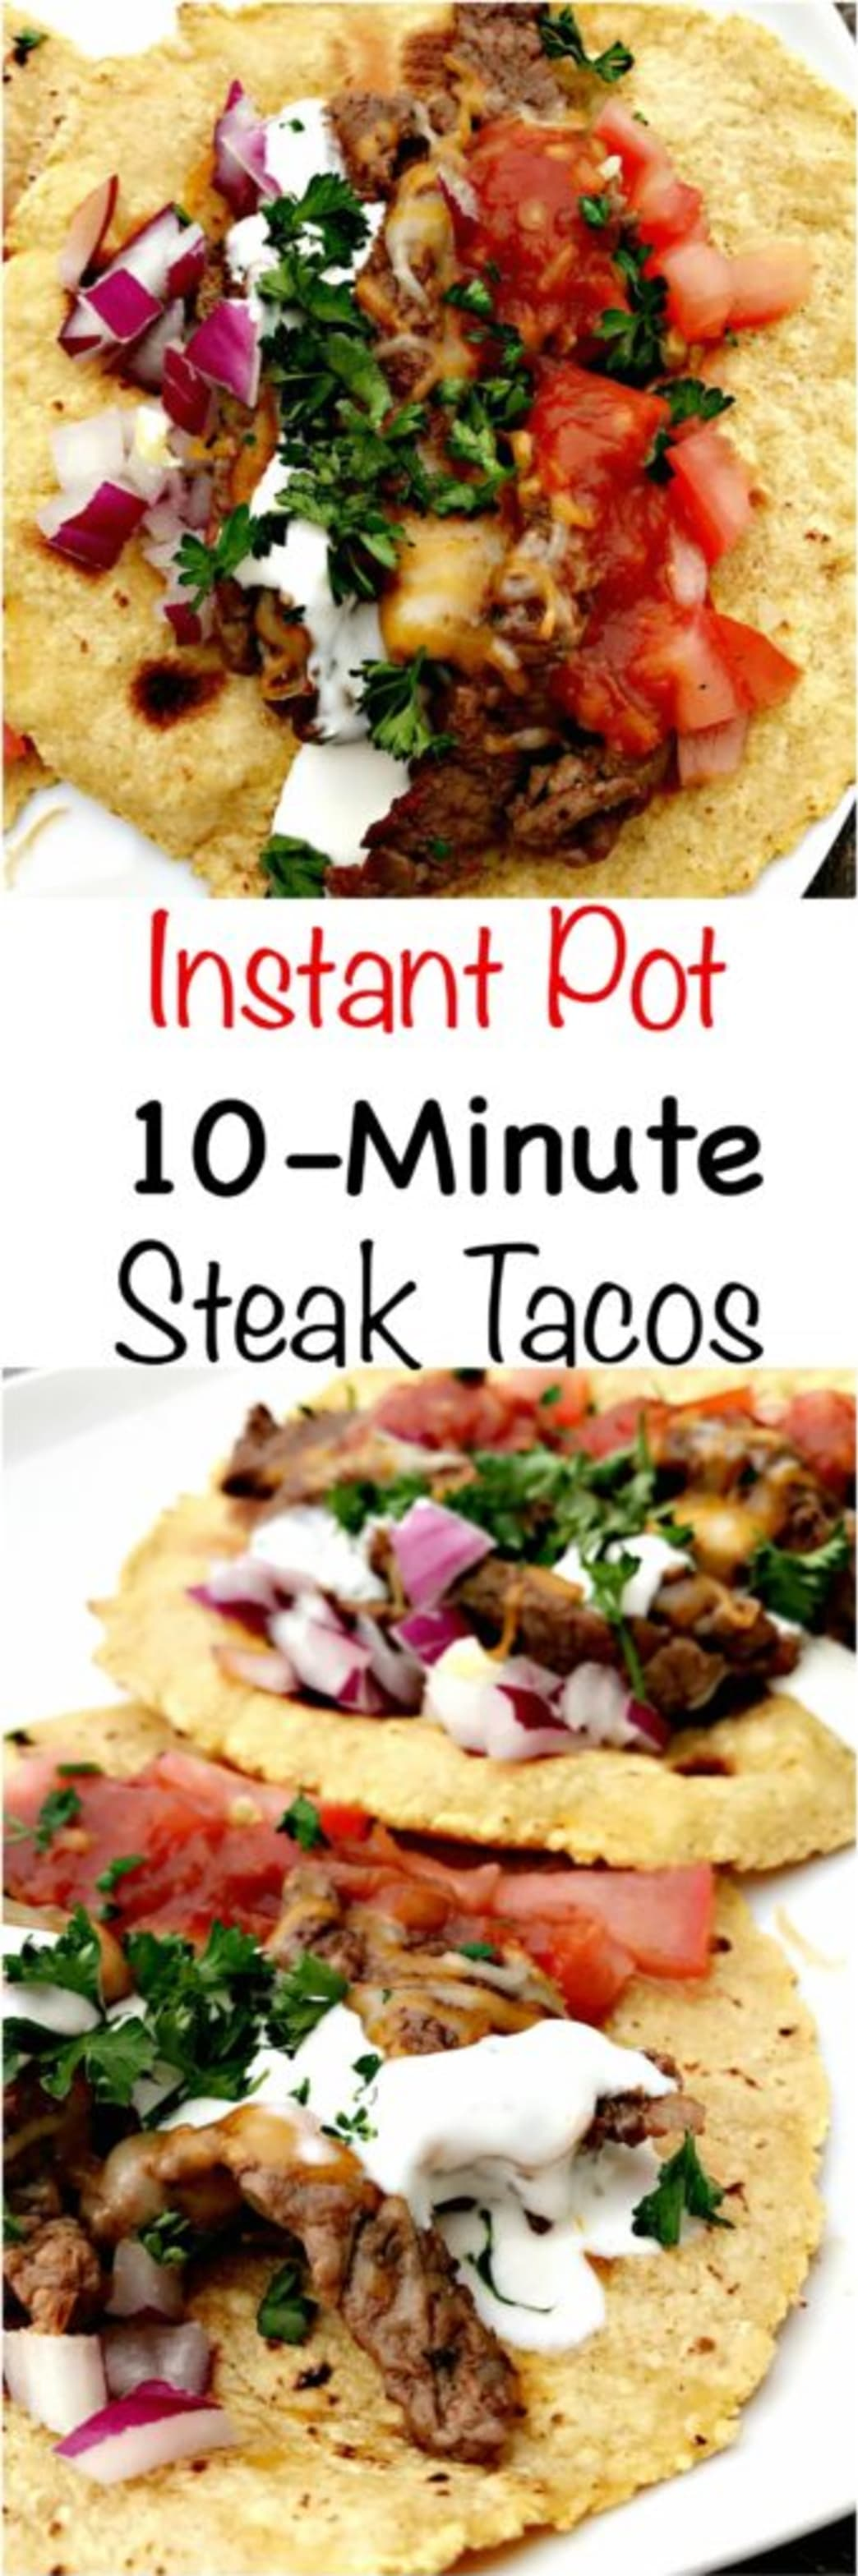 16 Light and Healthy Instant Pot Dinners That Are Perfect for Spring